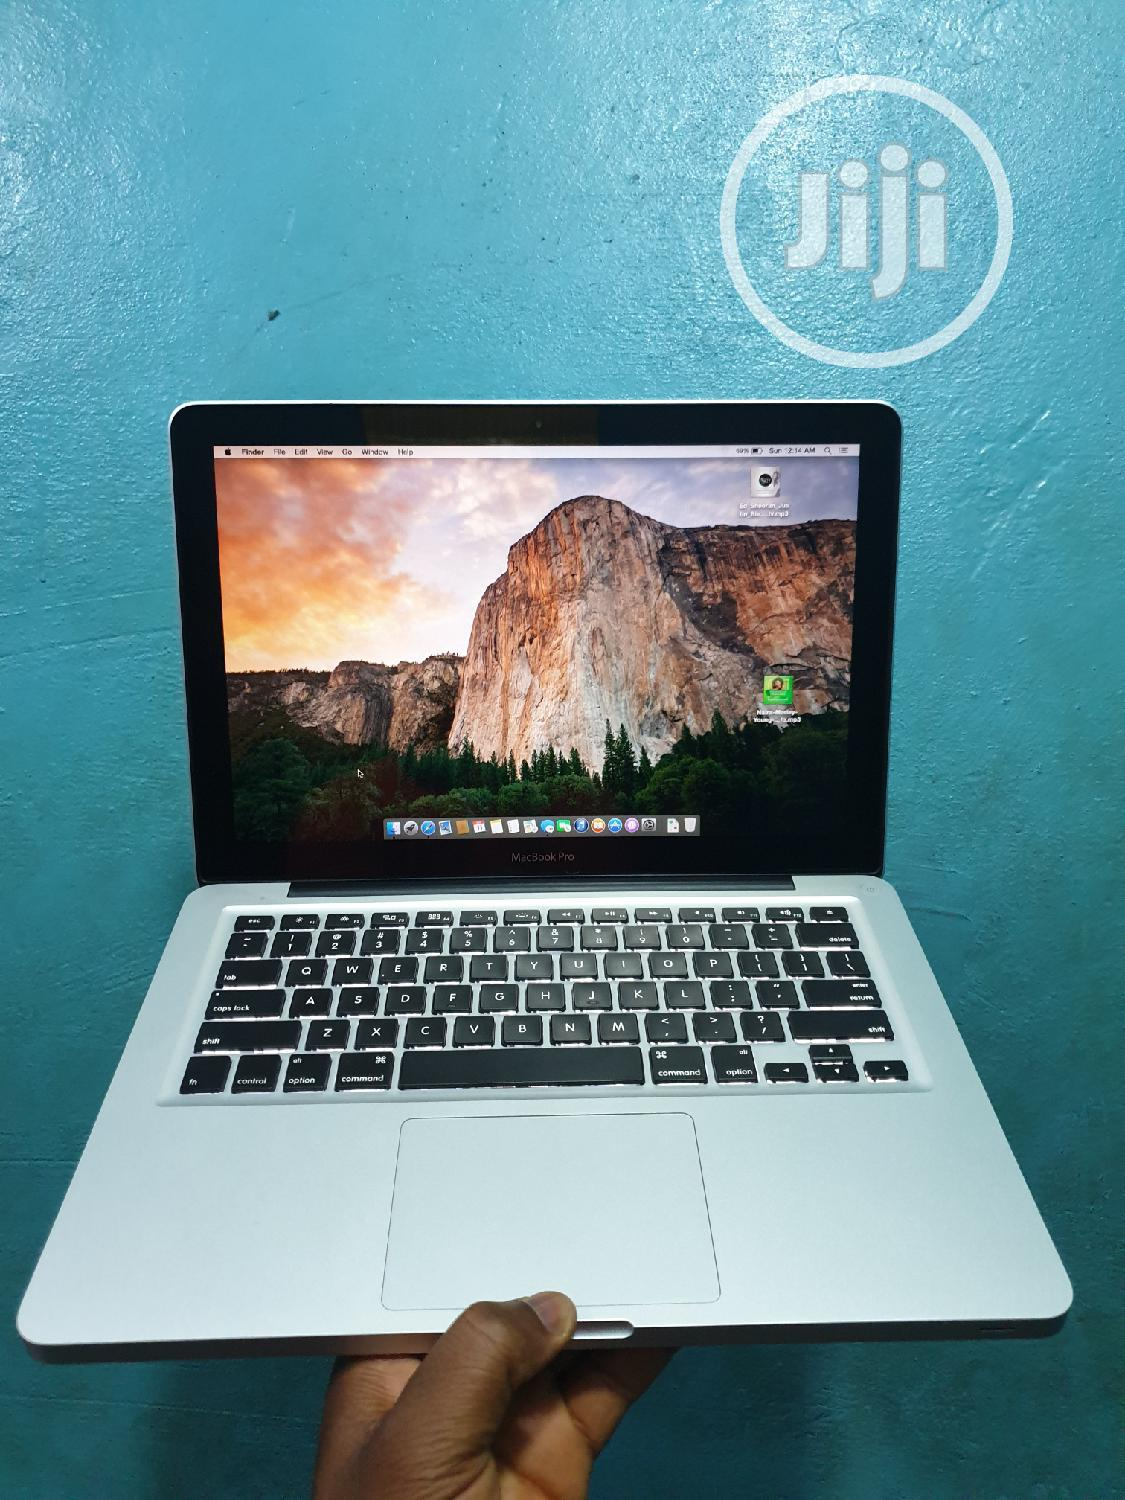 Laptop Apple MacBook Pro 2010 8GB Intel Core i5 HDD 500GB   Laptops & Computers for sale in Ikeja, Lagos State, Nigeria